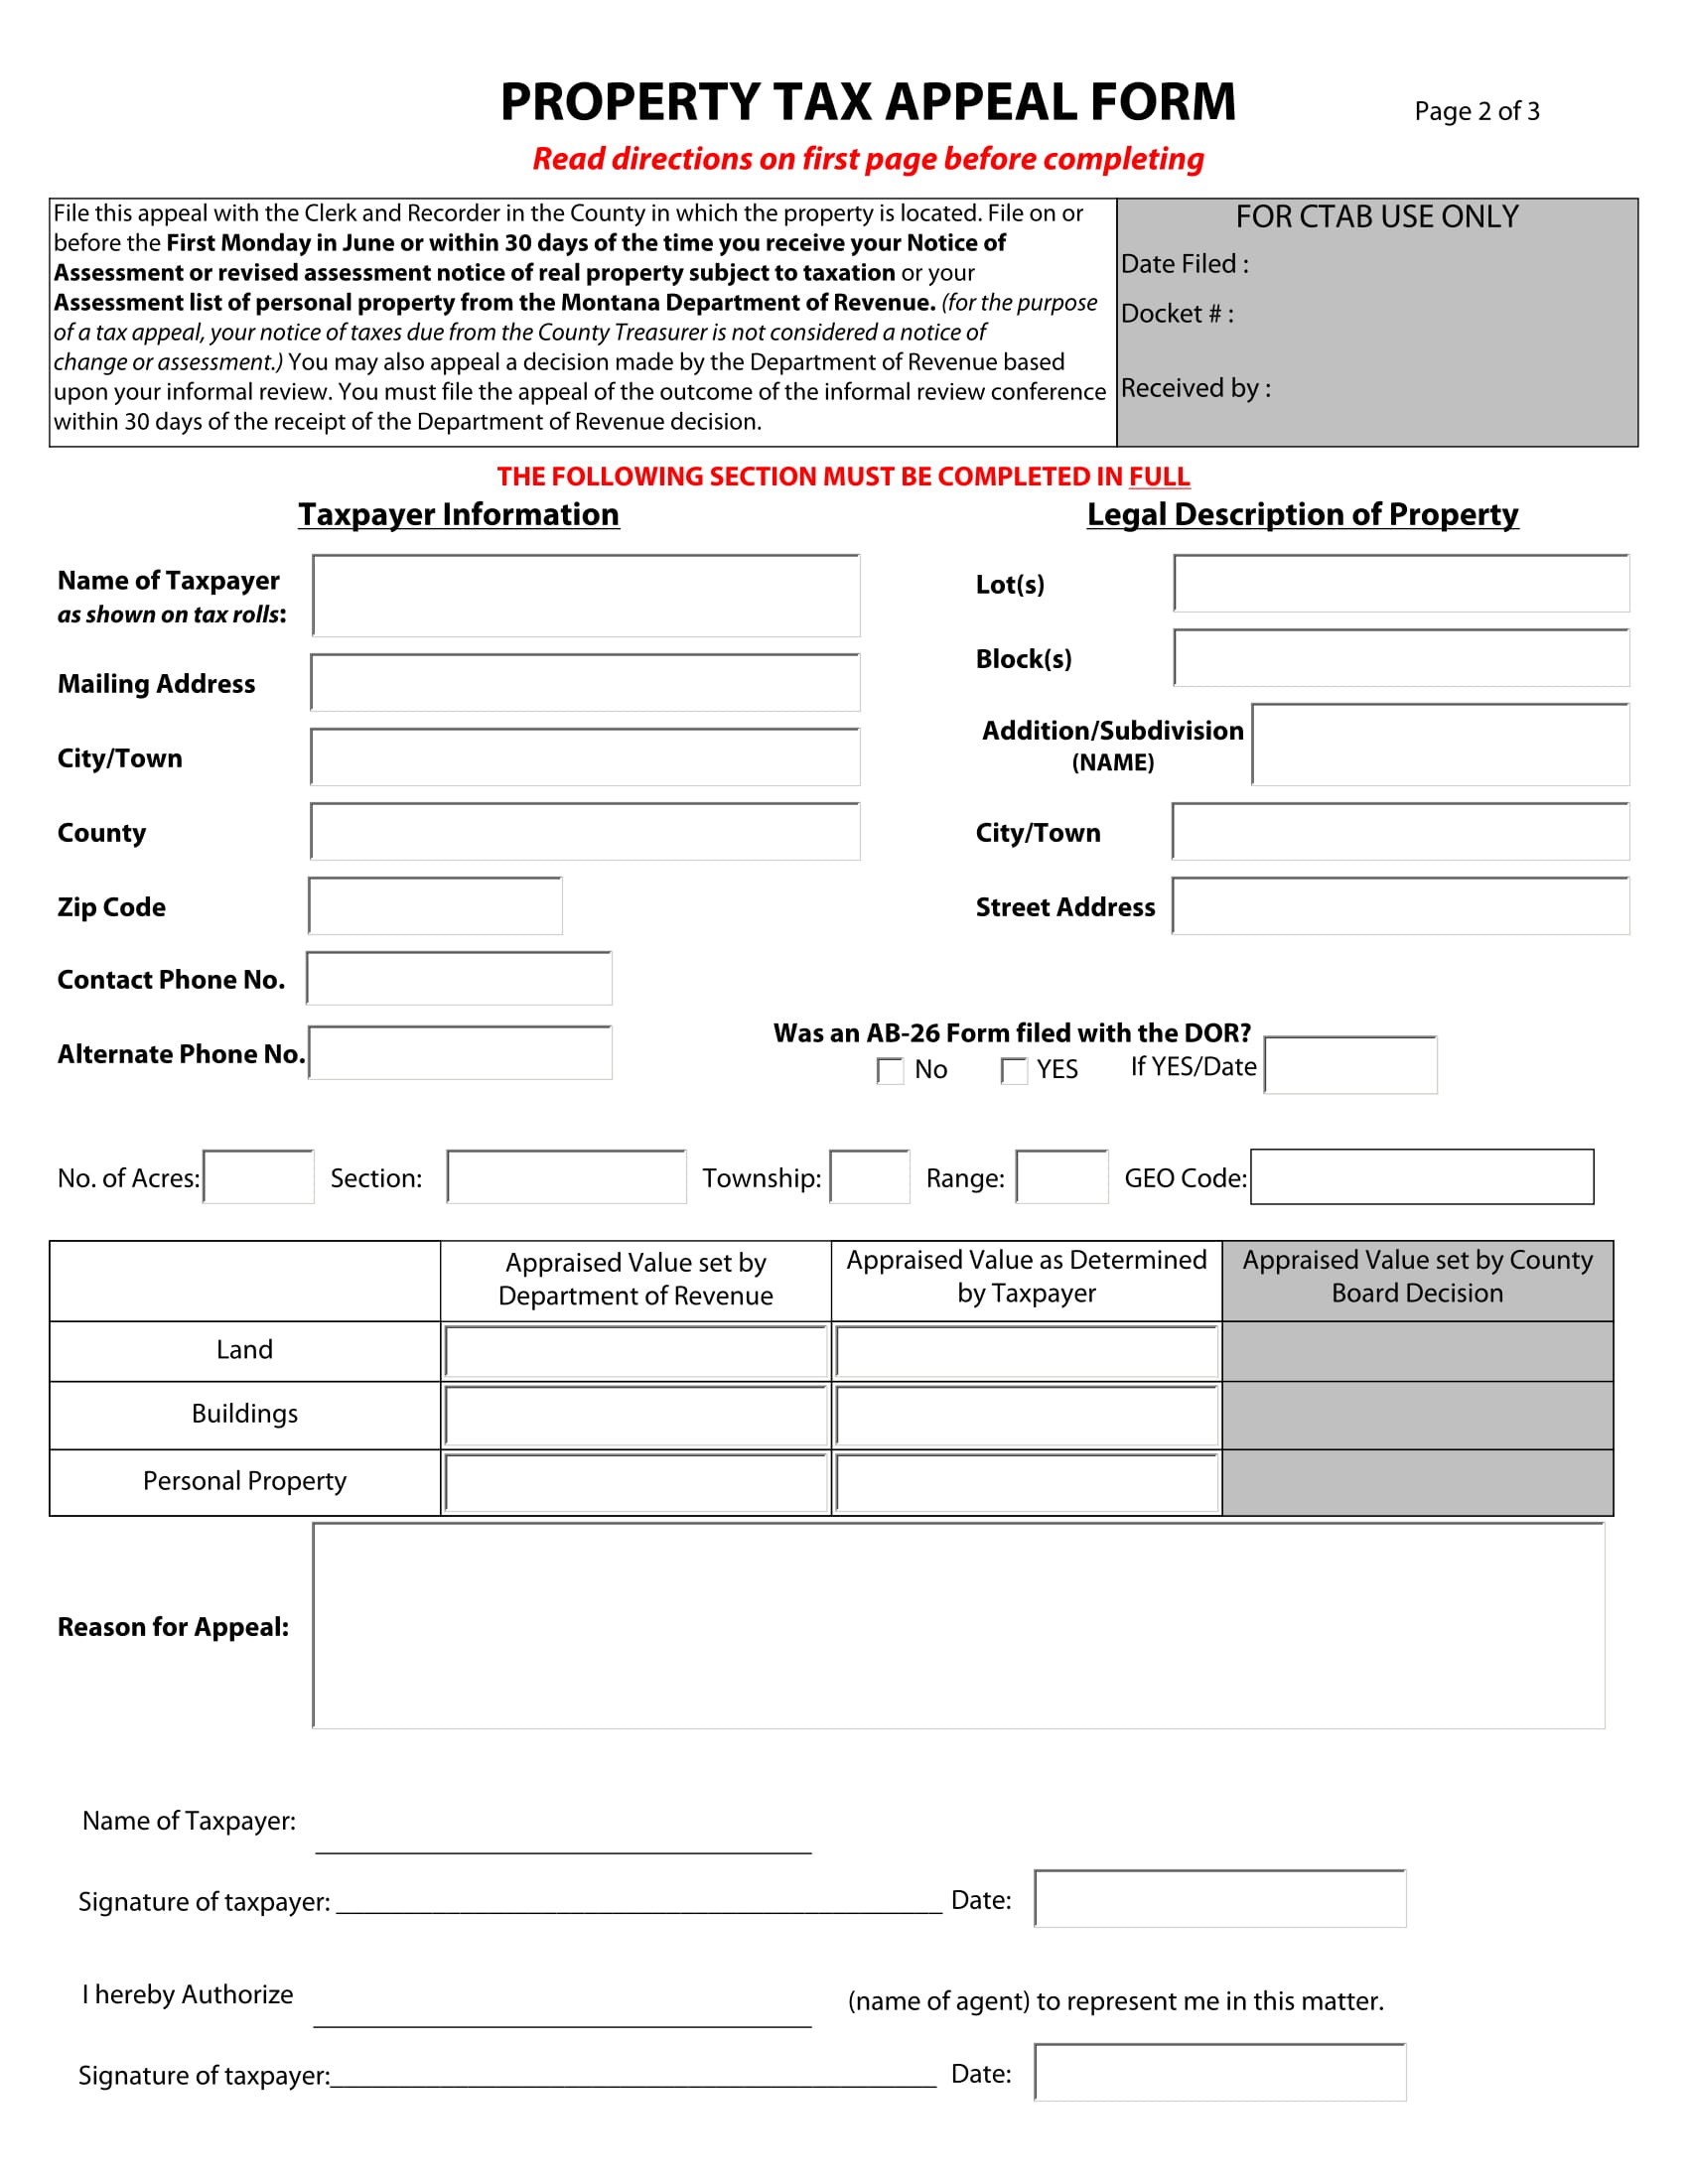 Property Tax Assessment Form 2